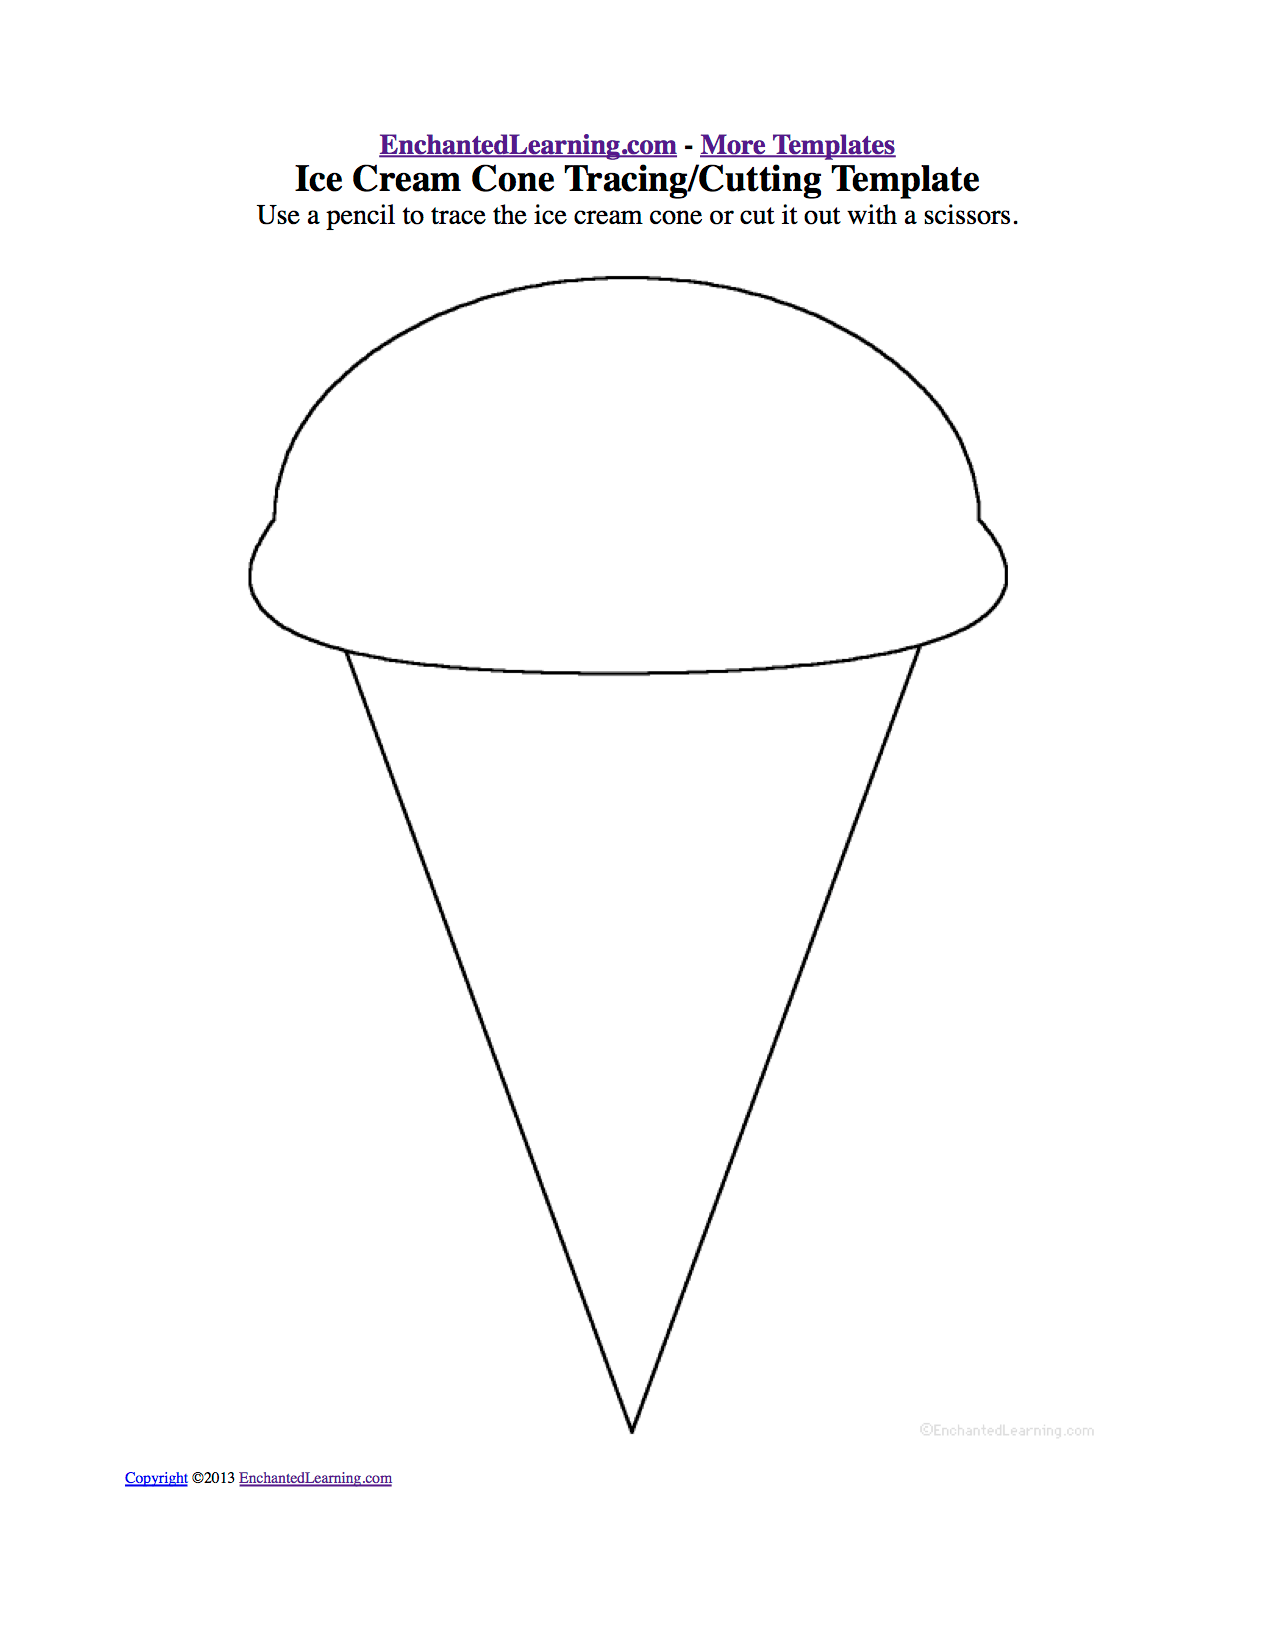 Ice Cream Theme Page At Enchantedlearning